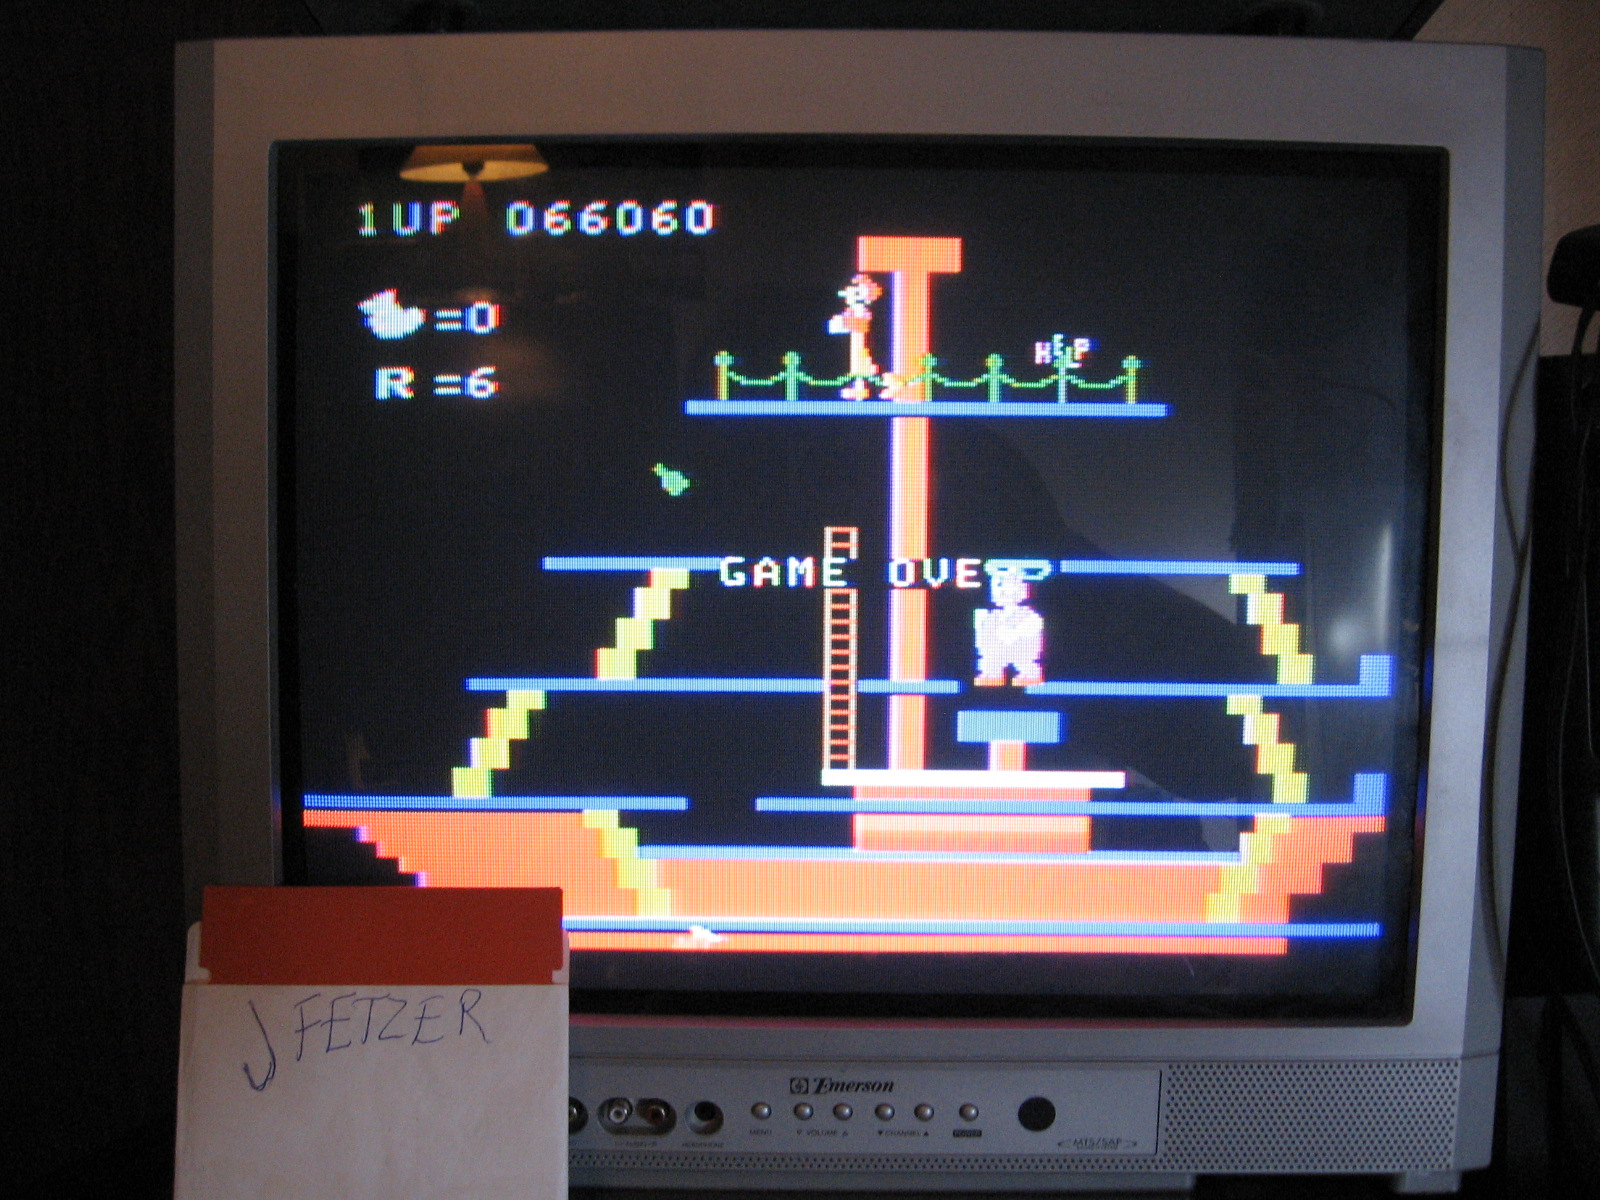 jfetzer: Popeye (TI 99/4A) 66,060 points on 2015-02-22 19:33:56